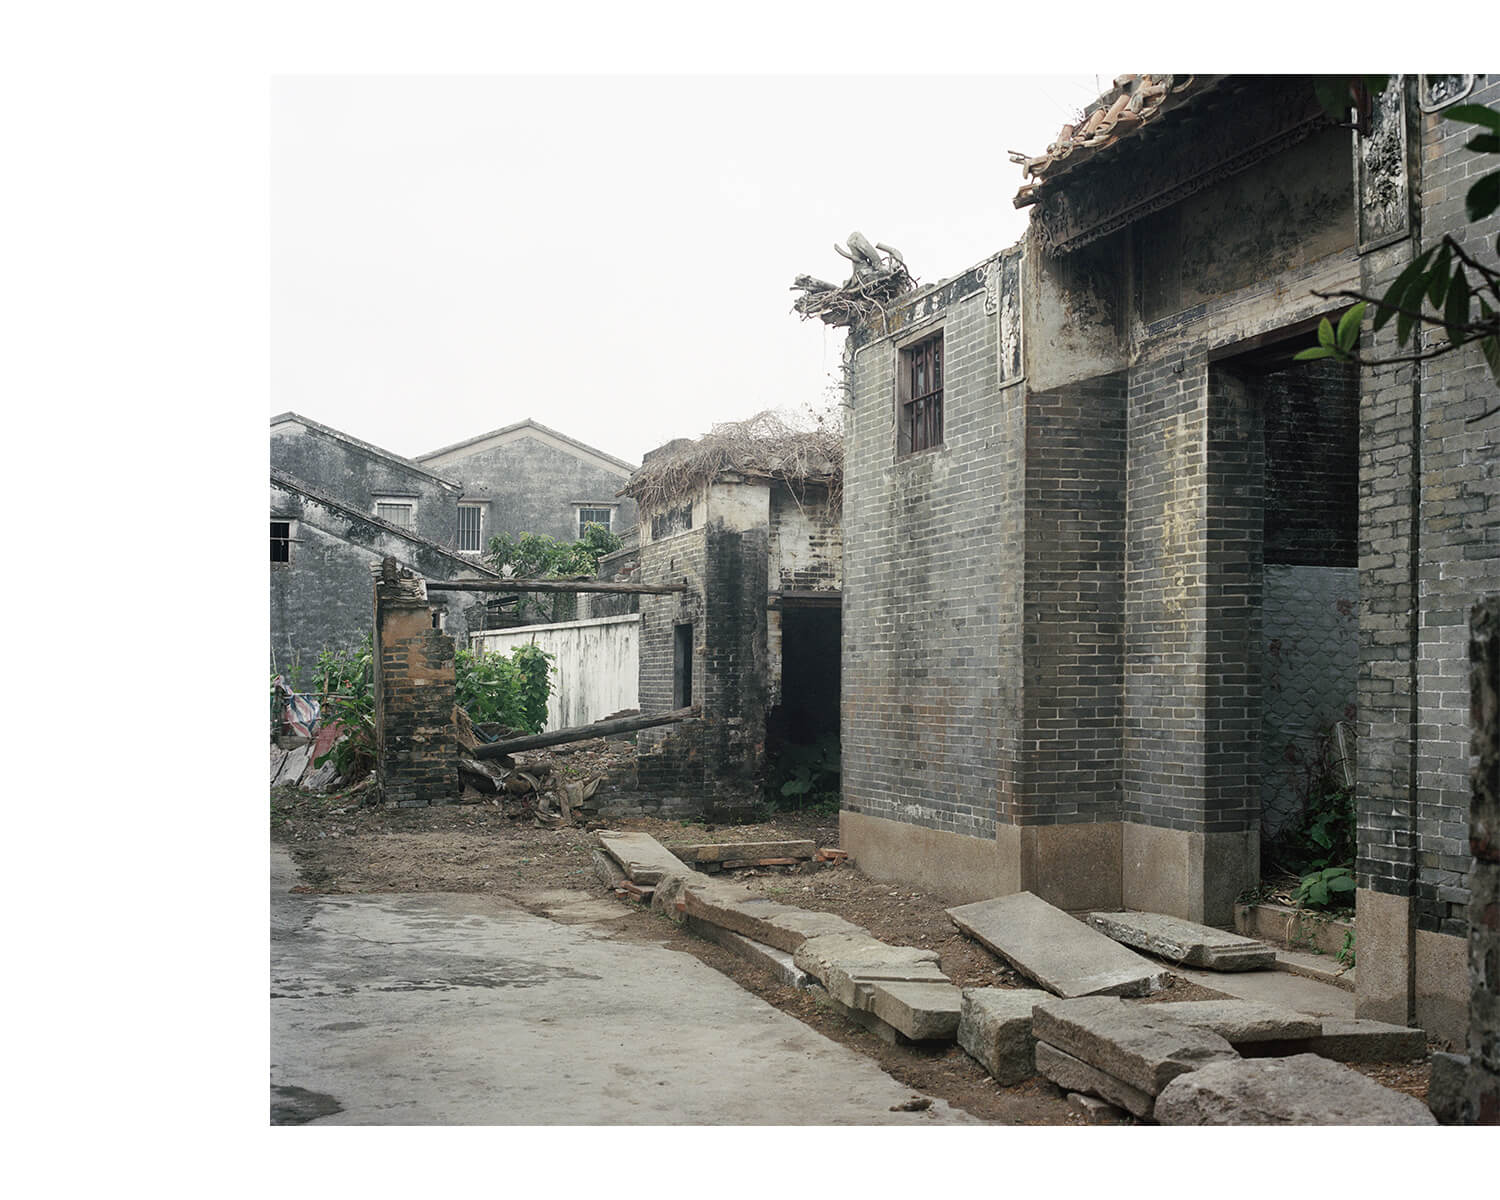 Tony Mak - To The West Of The Solitary Sea. Neglected brick structures